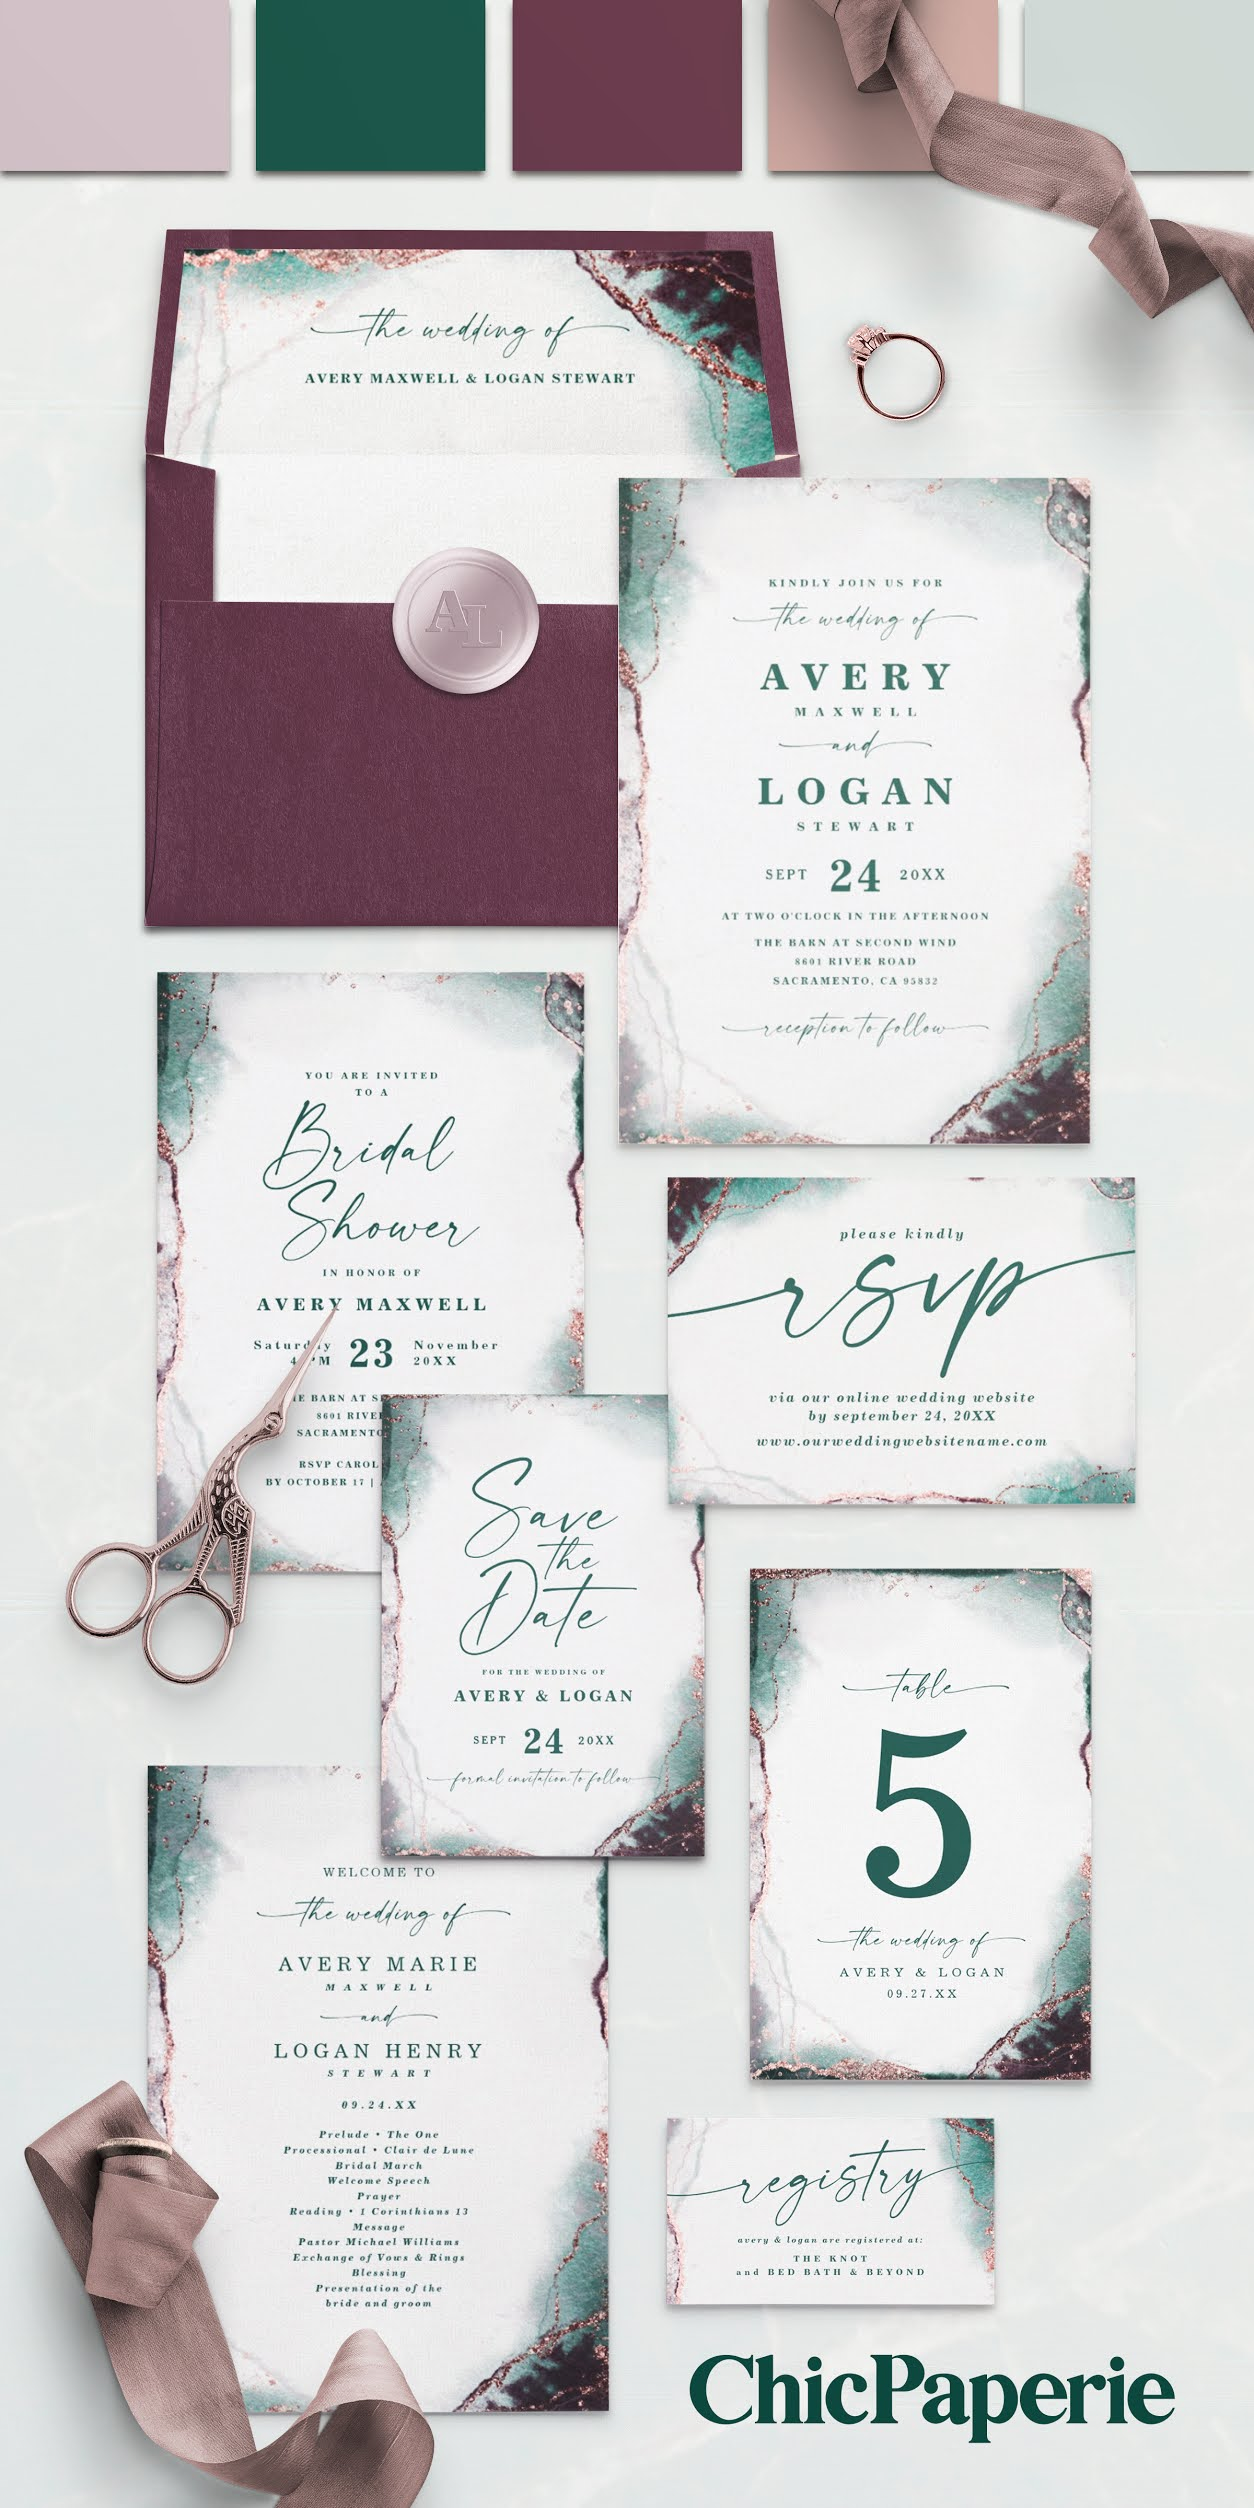 Abstract Watercolor Wedding Suite: Emerald Green, Mauve, Sangria Purple, Rose Gold, and Dusty Green